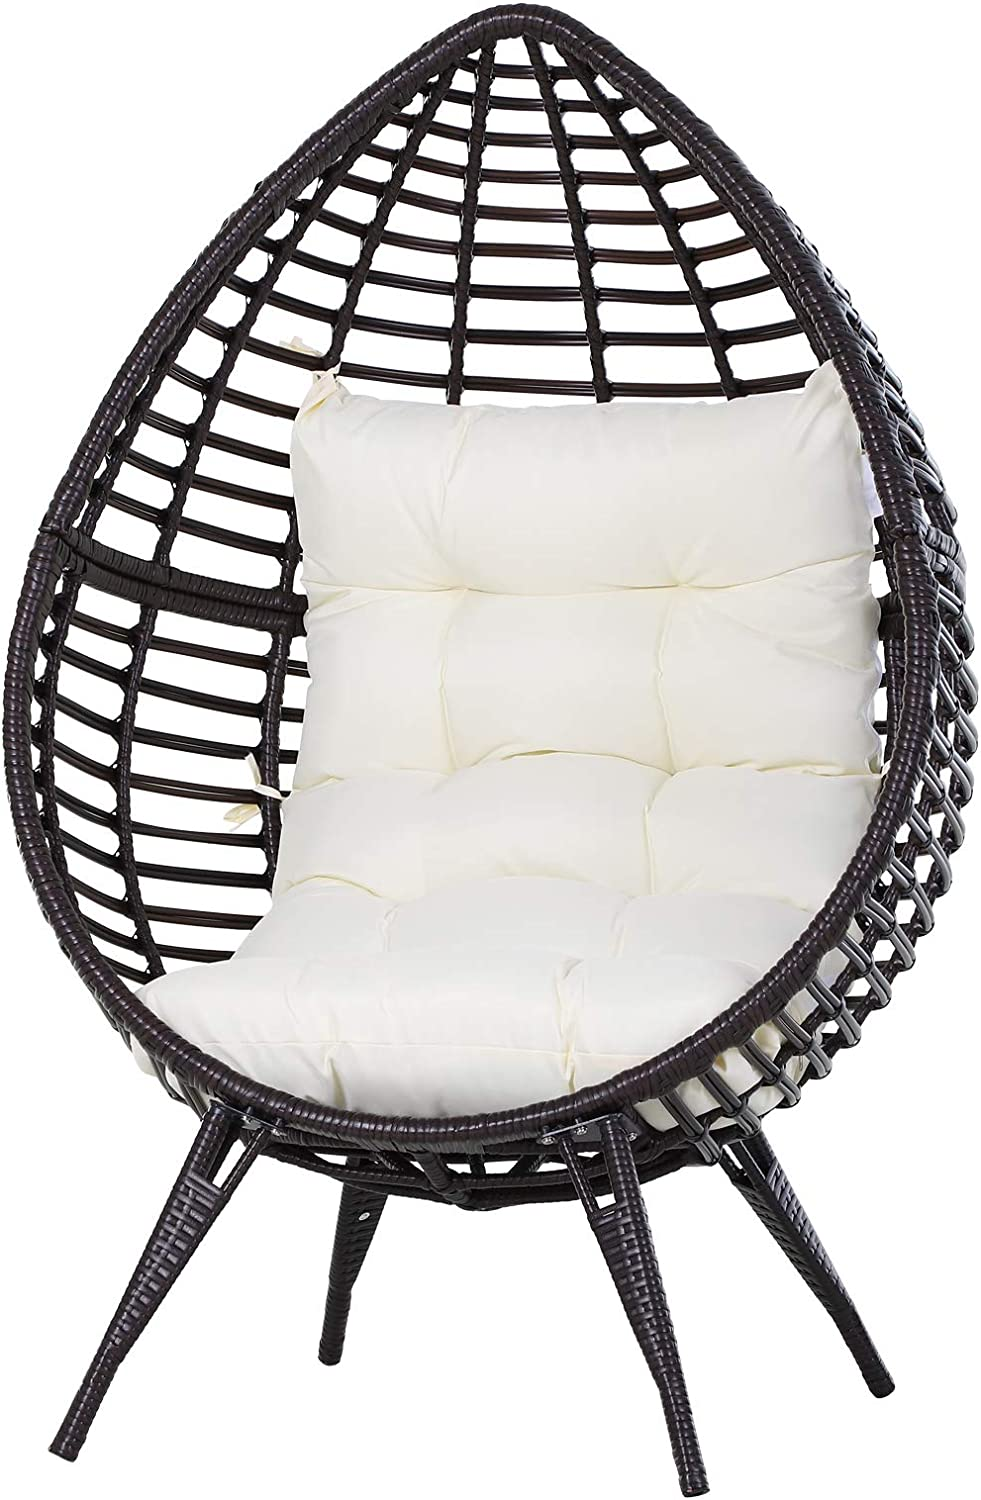 Outsunny Outdoor Indoor Wicker Teardrop Chair With Cushion Rattan Lounger Amazon Co Uk Kitchen Home